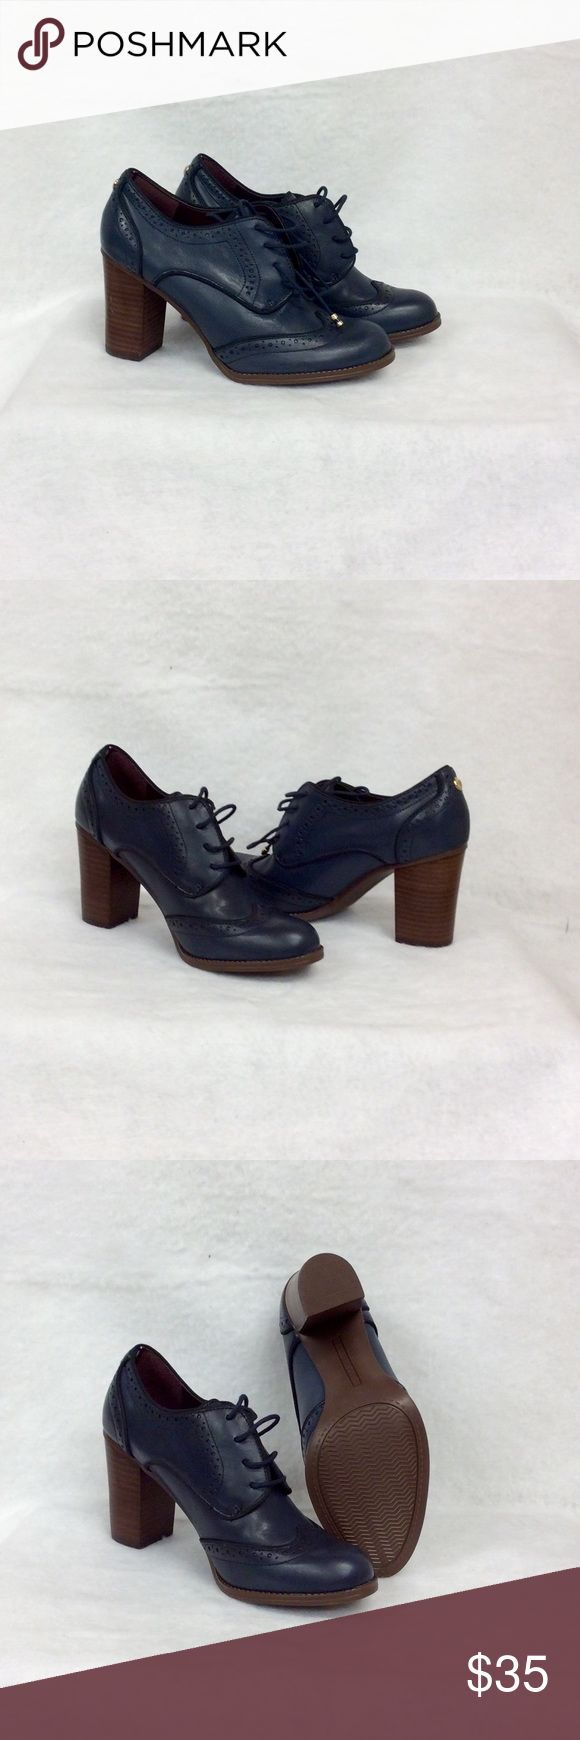 """NEW Leather Tommy Hilfiger Heels NEW Leather Navy Blue Tommy Hilfiger Wing Tip Lace Up Heels!! Never Worn! Perfect Condition! 3-1/4"""" Chunky Heel Leather Upper, Man Made Balance Tommy Hilfiger Shoes Ankle Boots & Booties"""